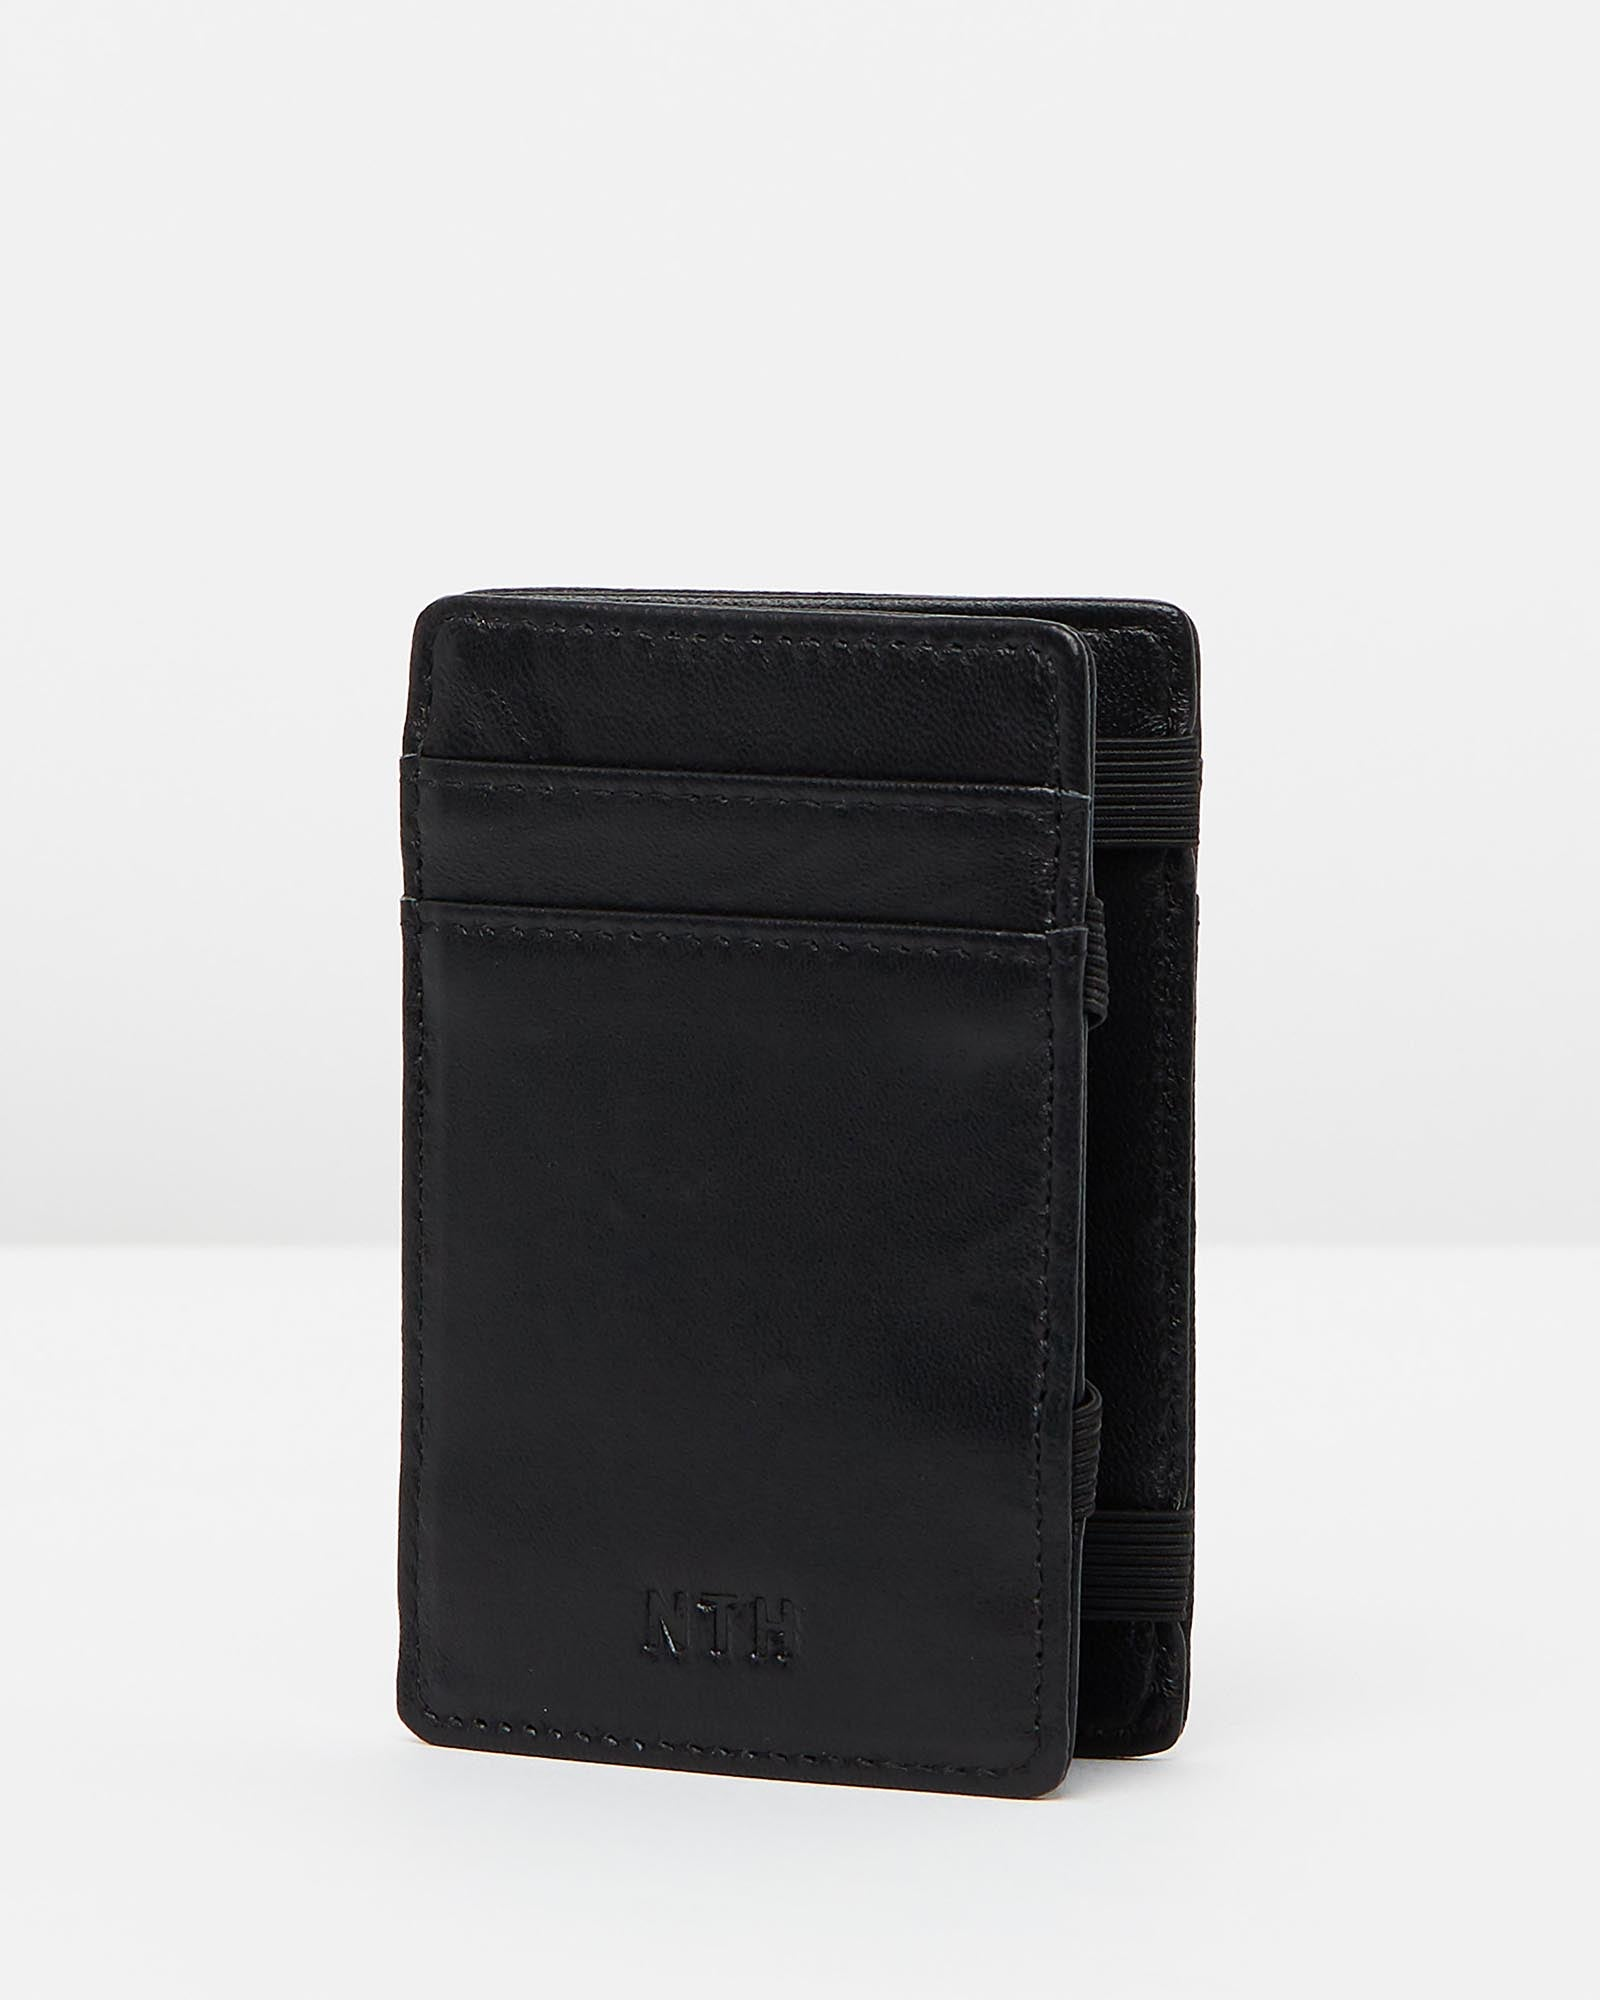 The Warrior Wallet Leather Black